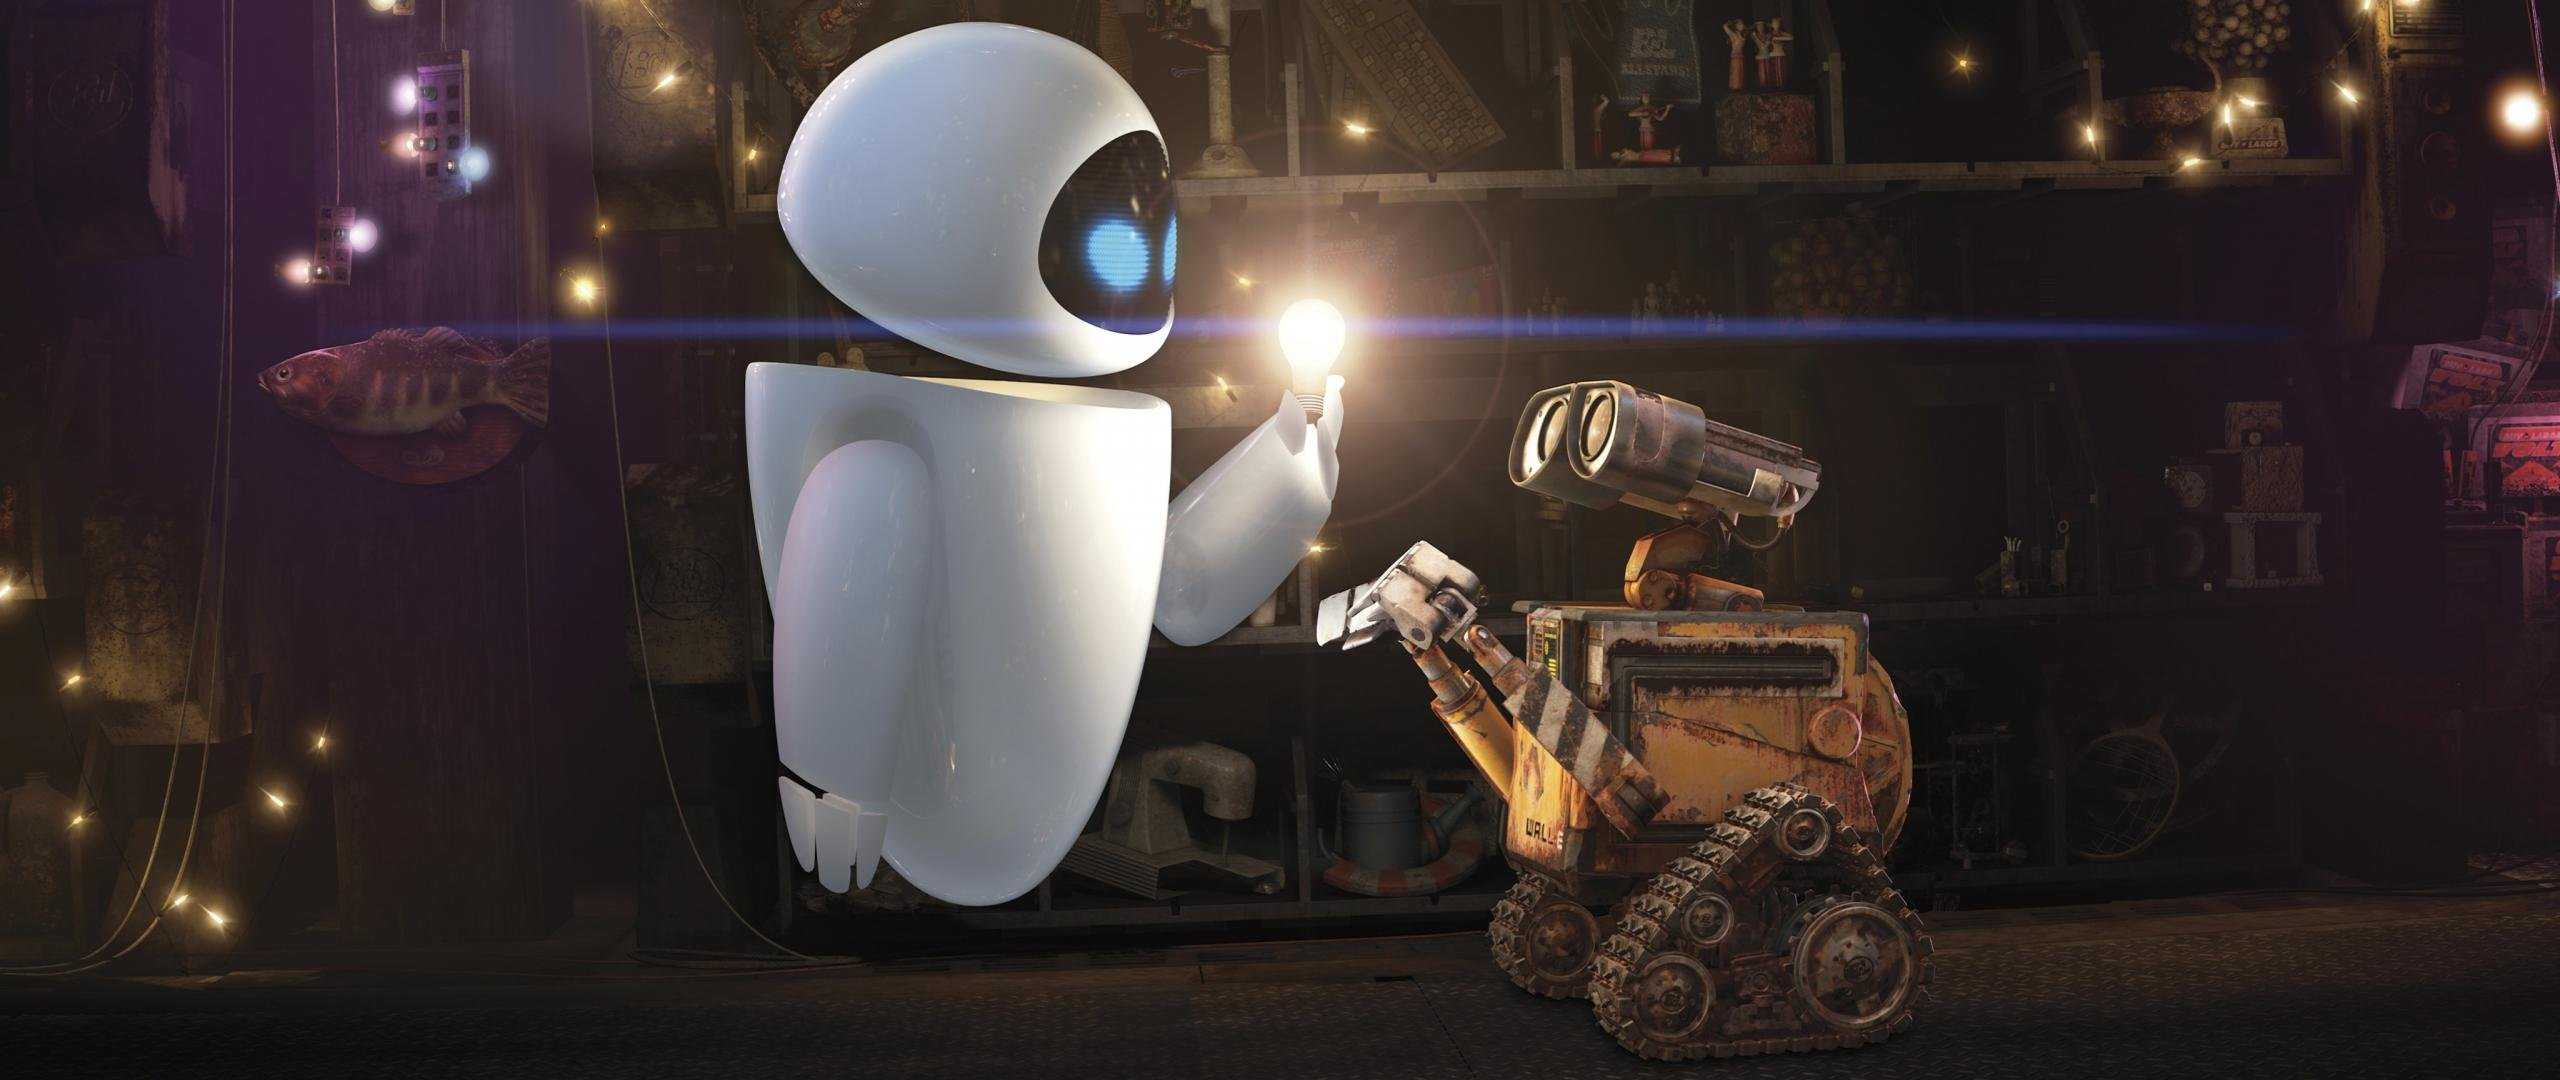 Free download Wall.E background ID:25894 hd 2560x1080 for PC